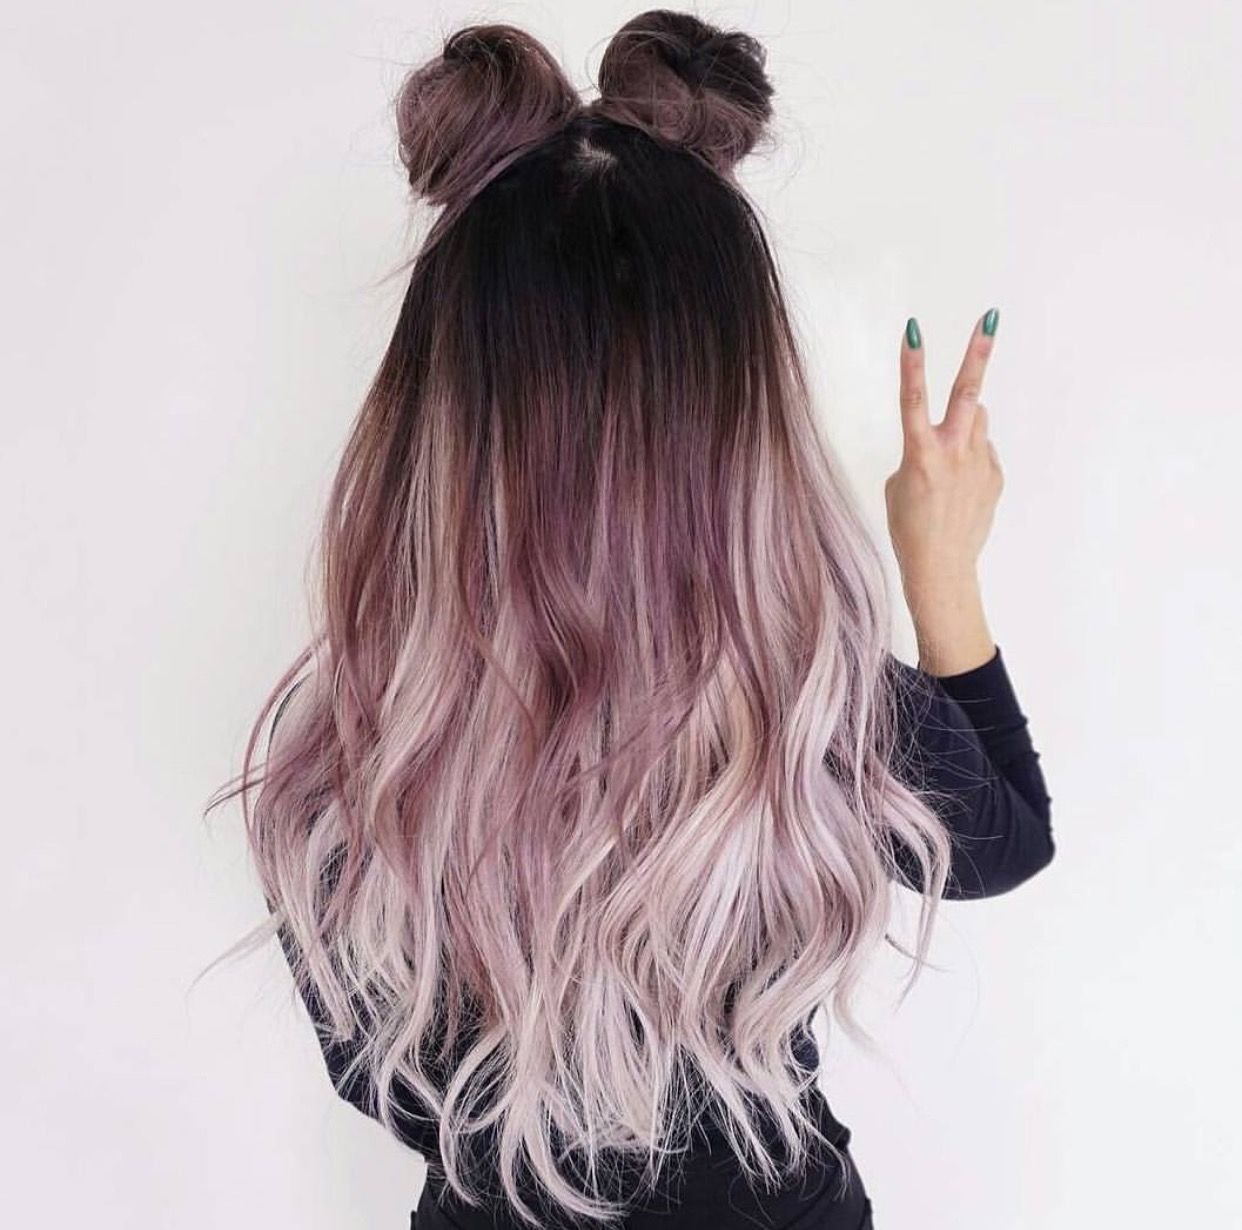 New Awesome Rockin Hairstyle And Color Ombre Dark To Light Ideas With Pictures